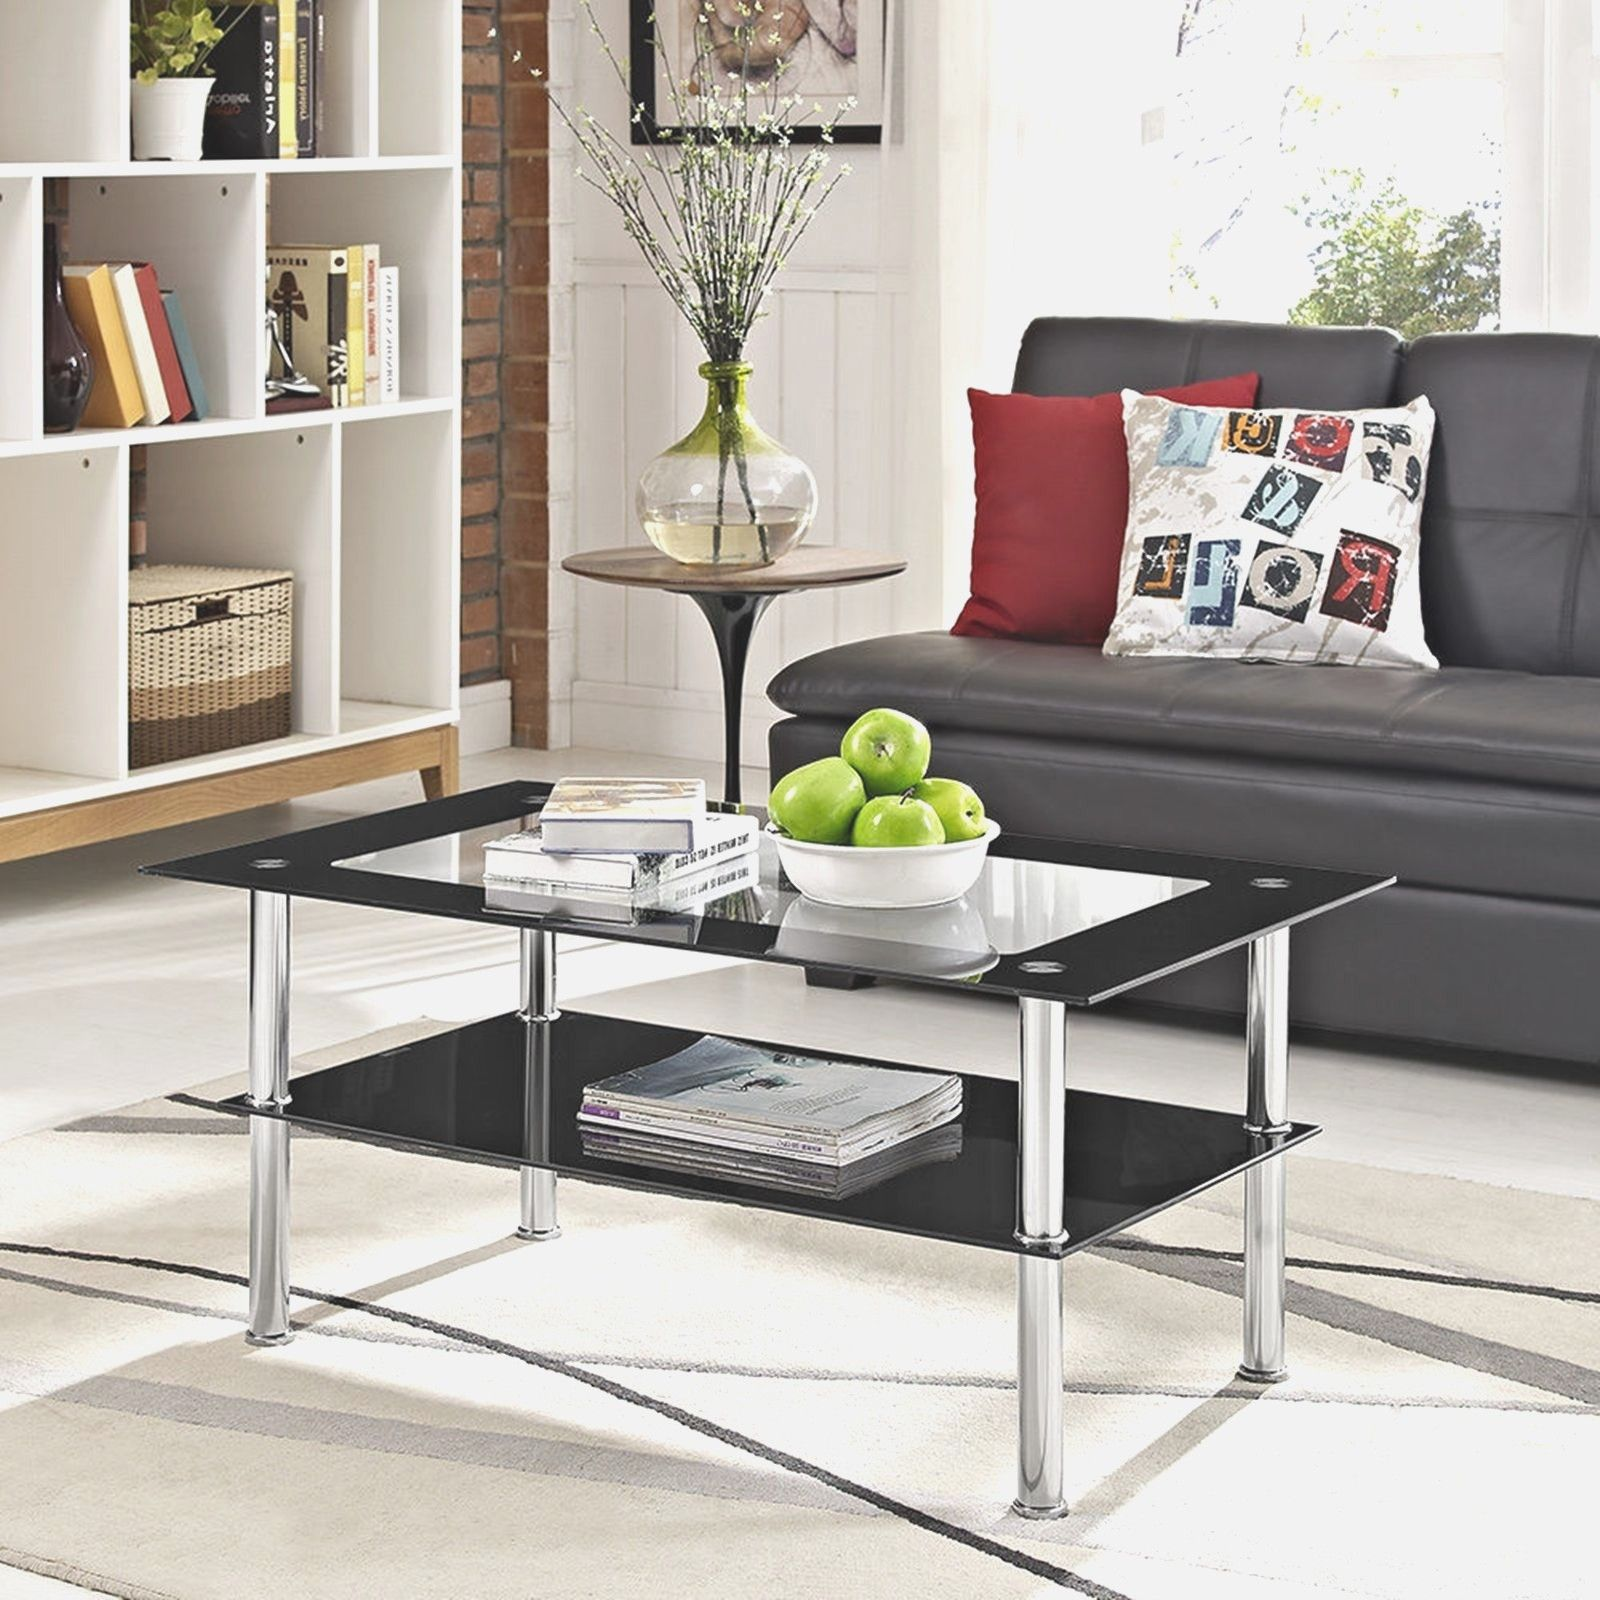 Glass Living Room Table Sets   Glass Coffee Table Sets Cheap, Glass Coffee Table  Sets Sale, Glass Living Room Furniture Sets, Glass Living Room Furniture Uk  ...